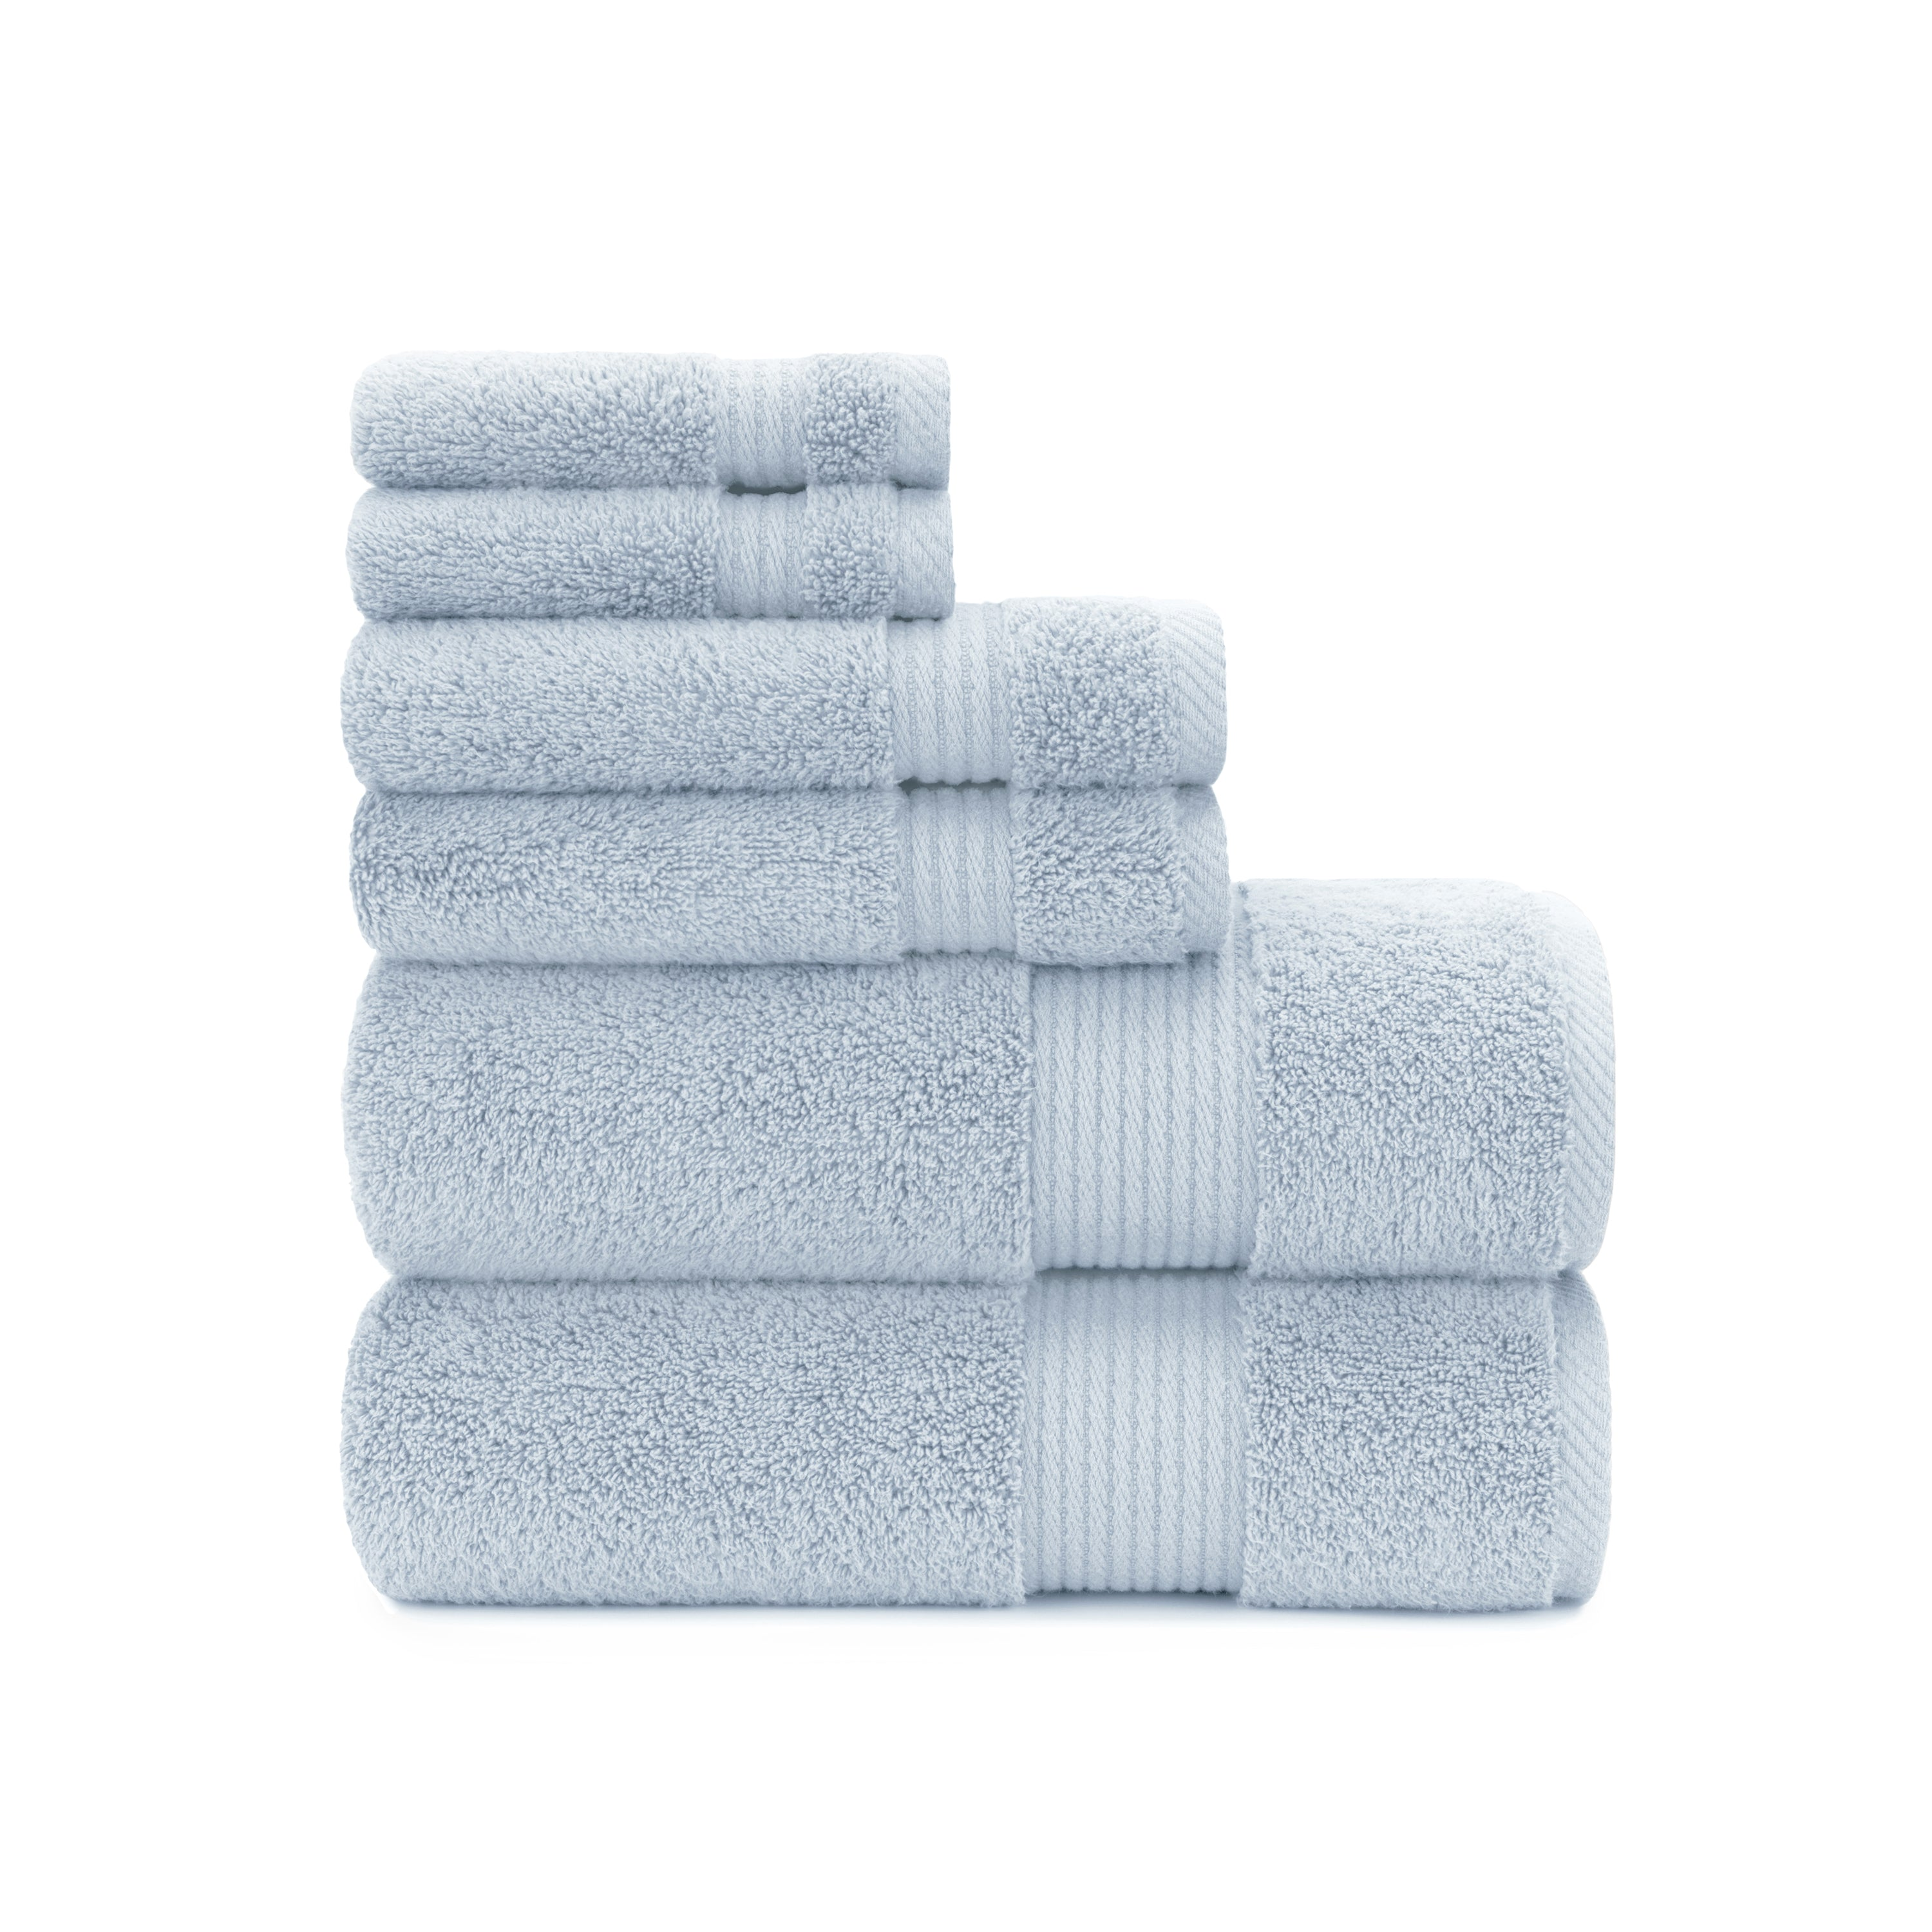 Cotton Craft 6 Pack, Redecorate Your Kitchen, 100% Combed Cotton Towels,  Designer Towel Set U0026 Guest Towels